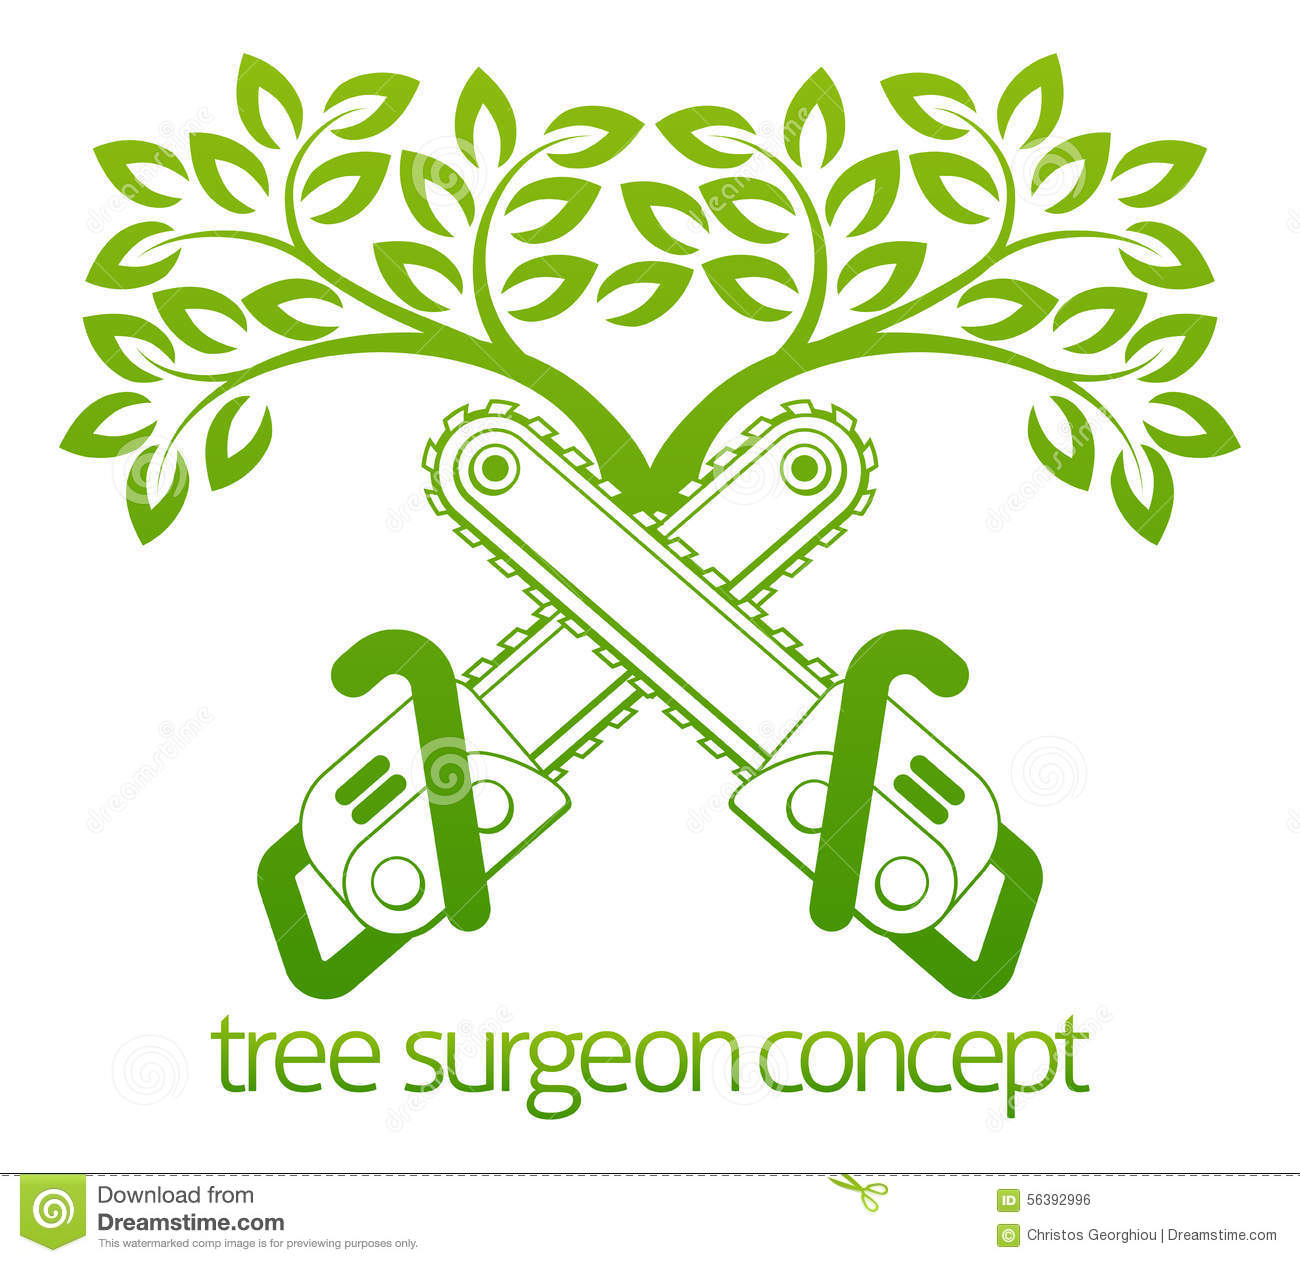 Tree Surgeon Cainsaws And Tree Design Stock Vector Illustration Of Logo Spring 56392996